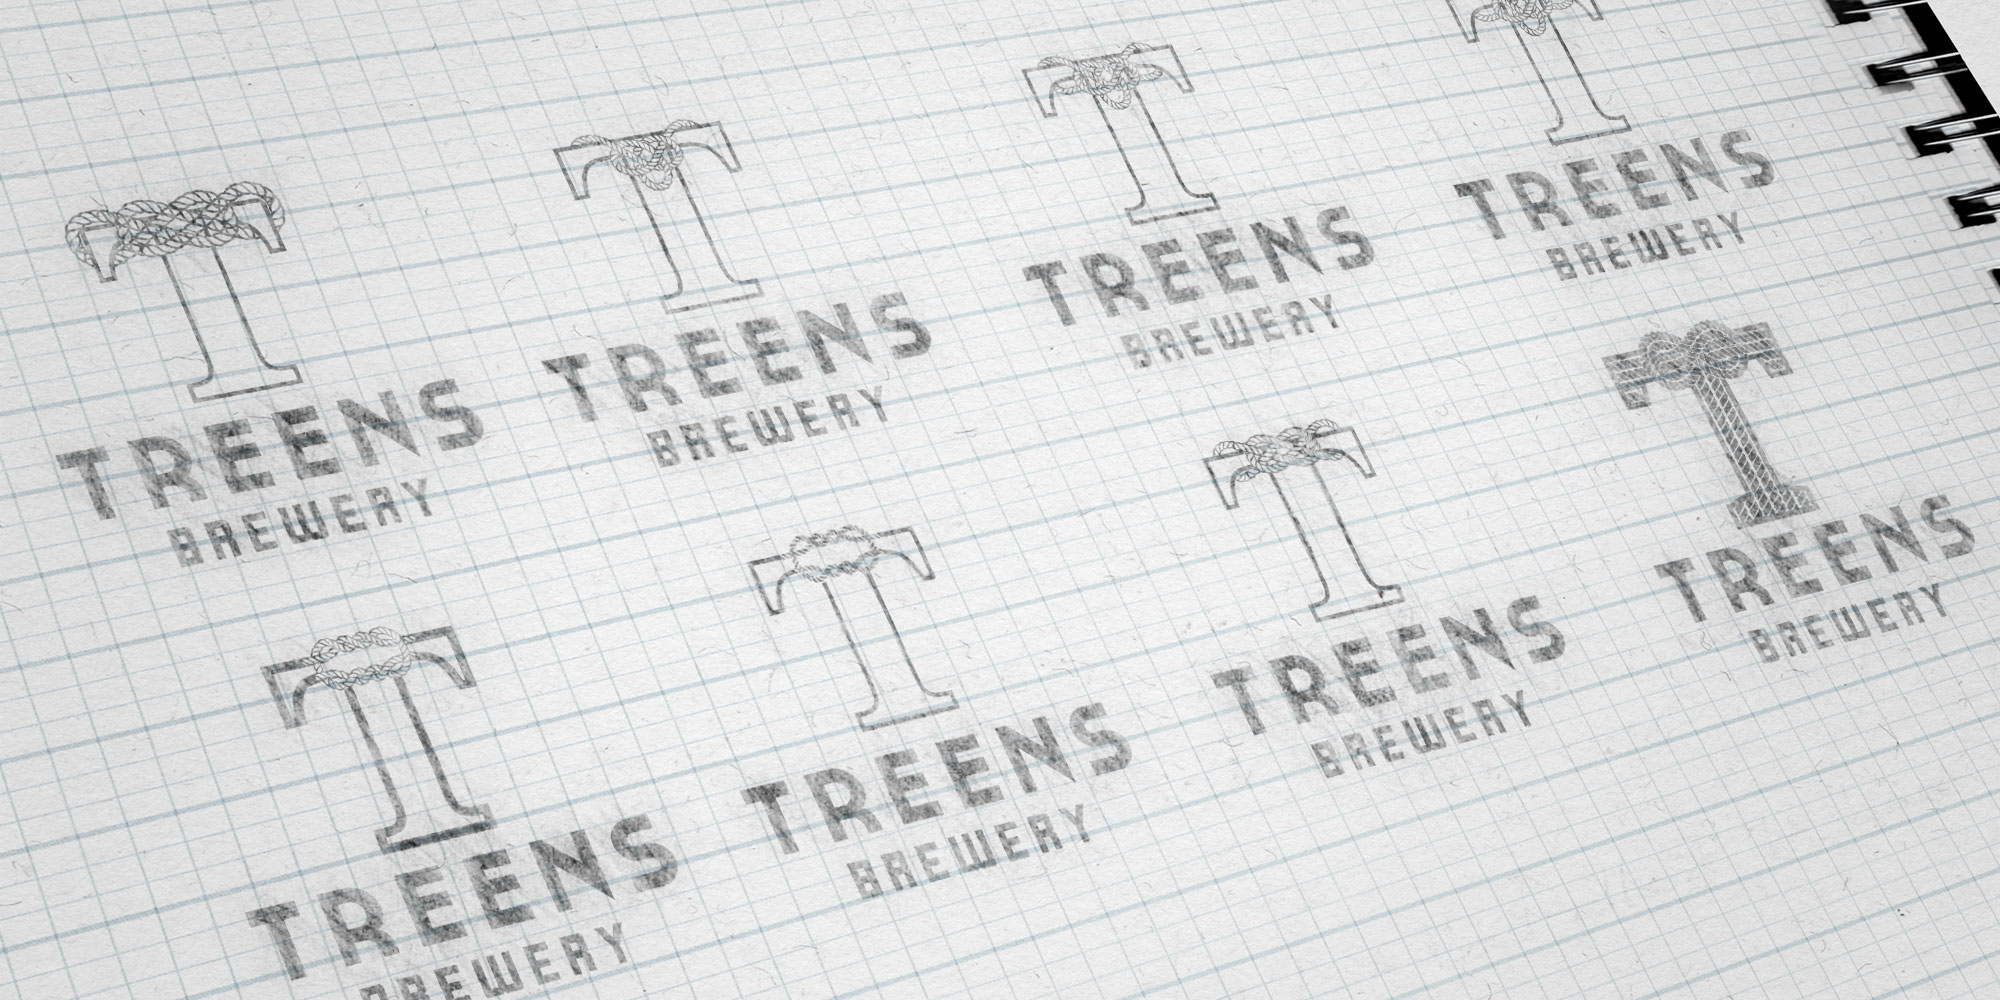 Treen's Brewery Logo Design Sketches